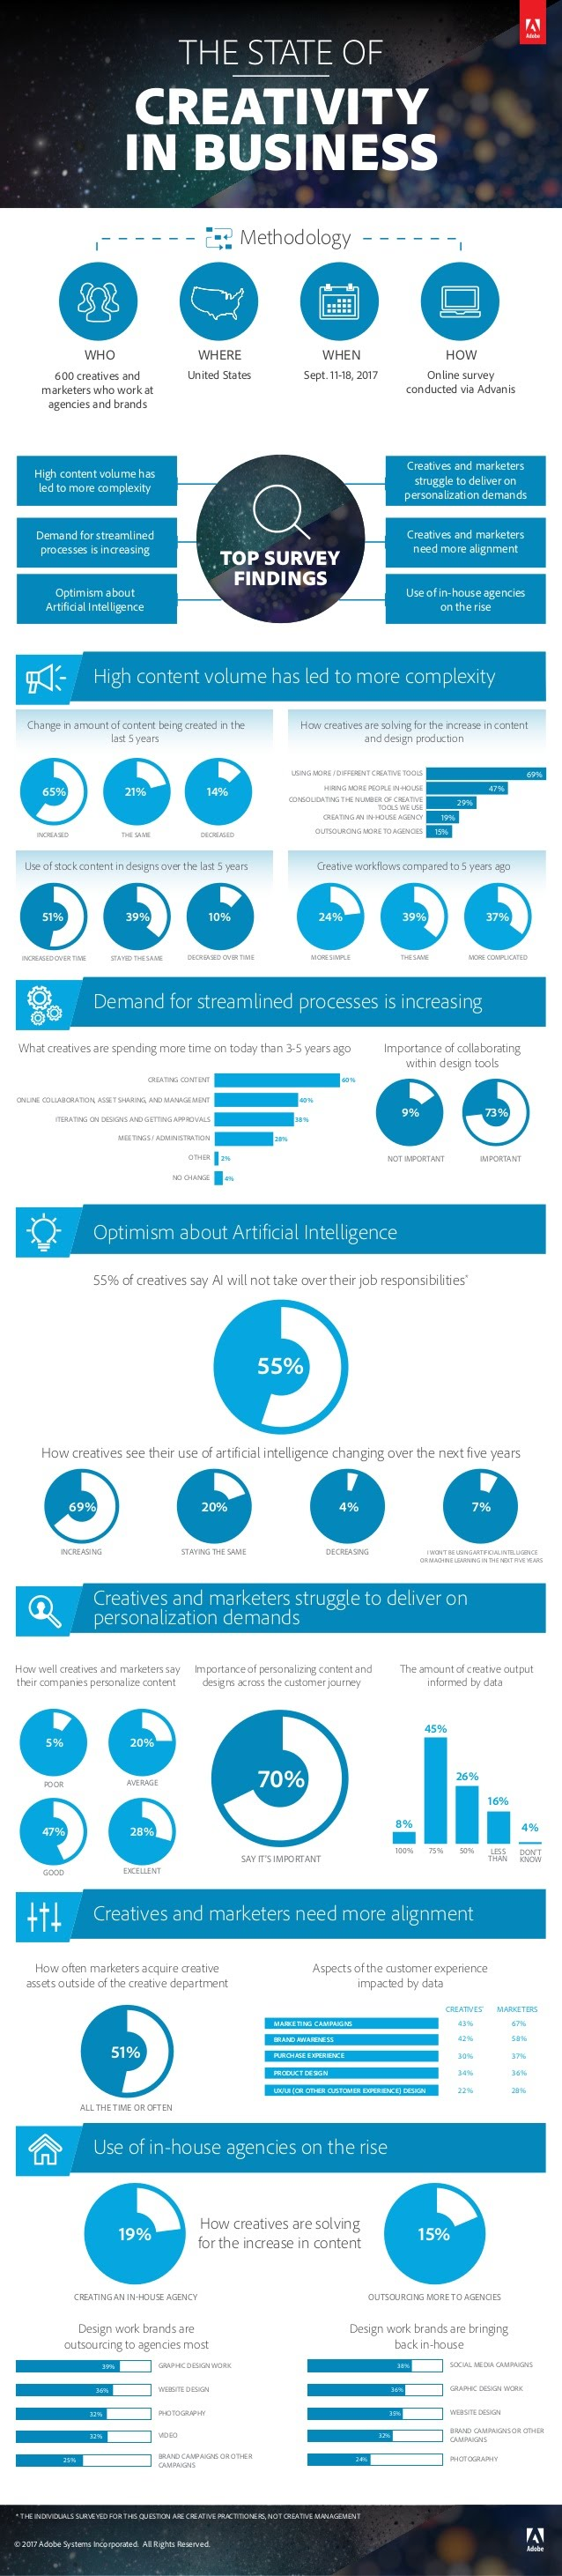 The State of Creativity in Business [Infographic] | Social Media Today